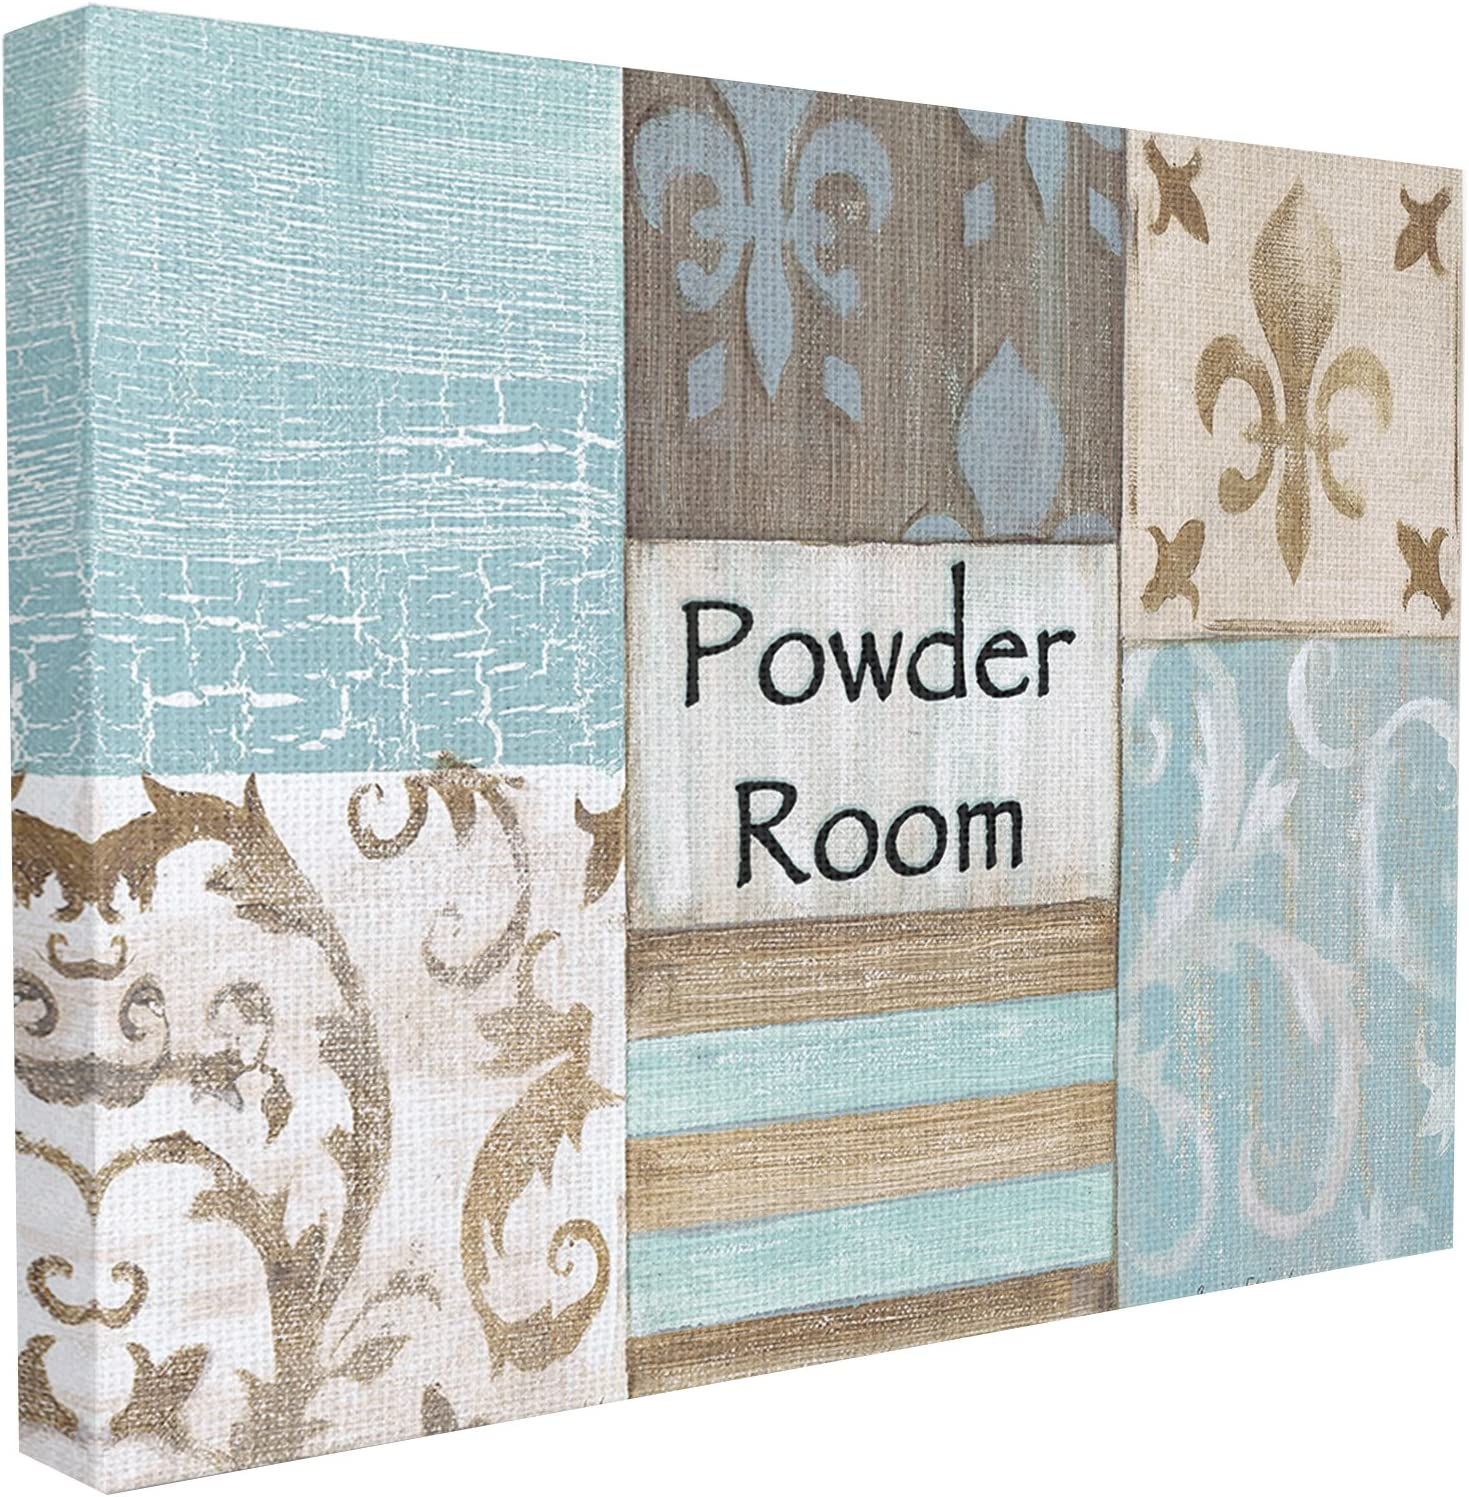 Stupell Industries The Stupell Home Decor Collection Fleur de Lis Powder Room Blue, Brown and Beige Bathroom Canvas Wall Art, 16 x 20, Design by Artist Bonnie Wrublesky